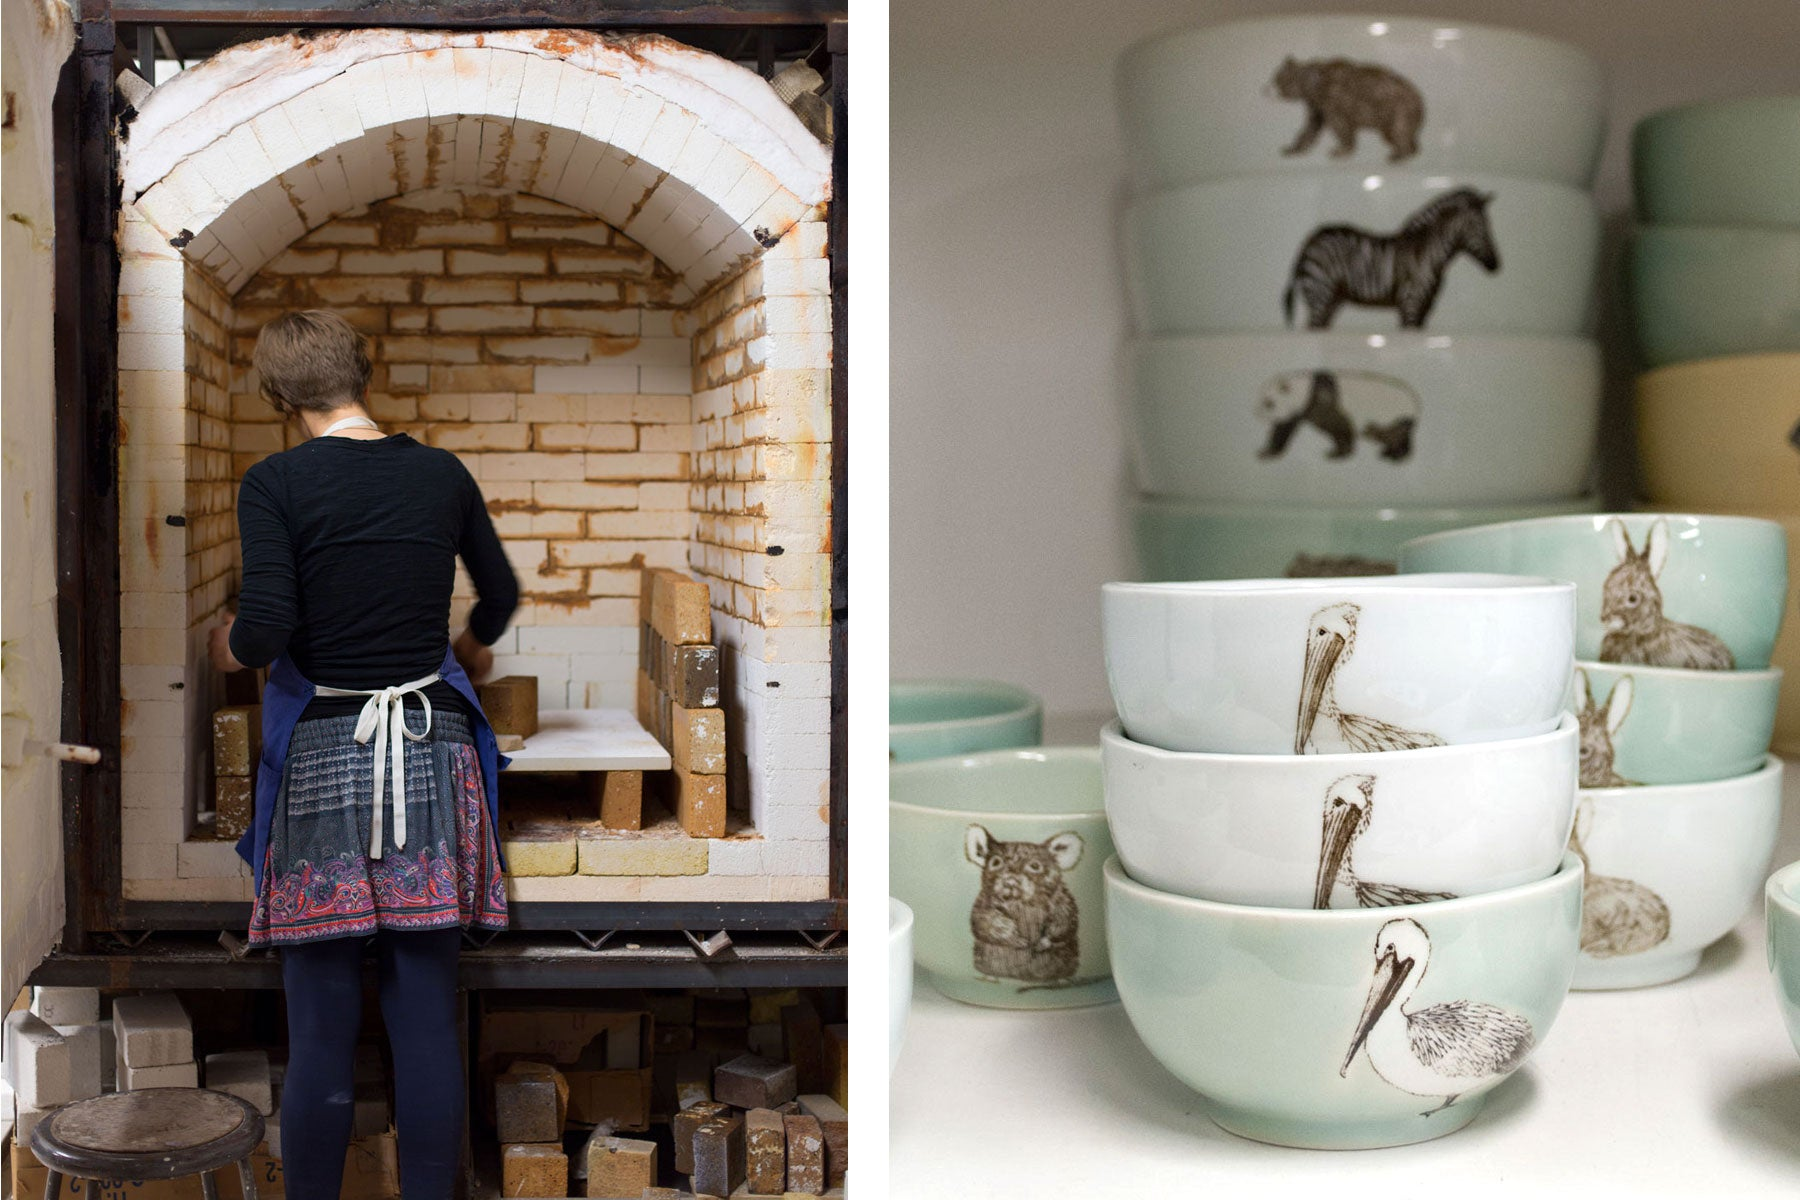 skt ceramics - readying the kiln